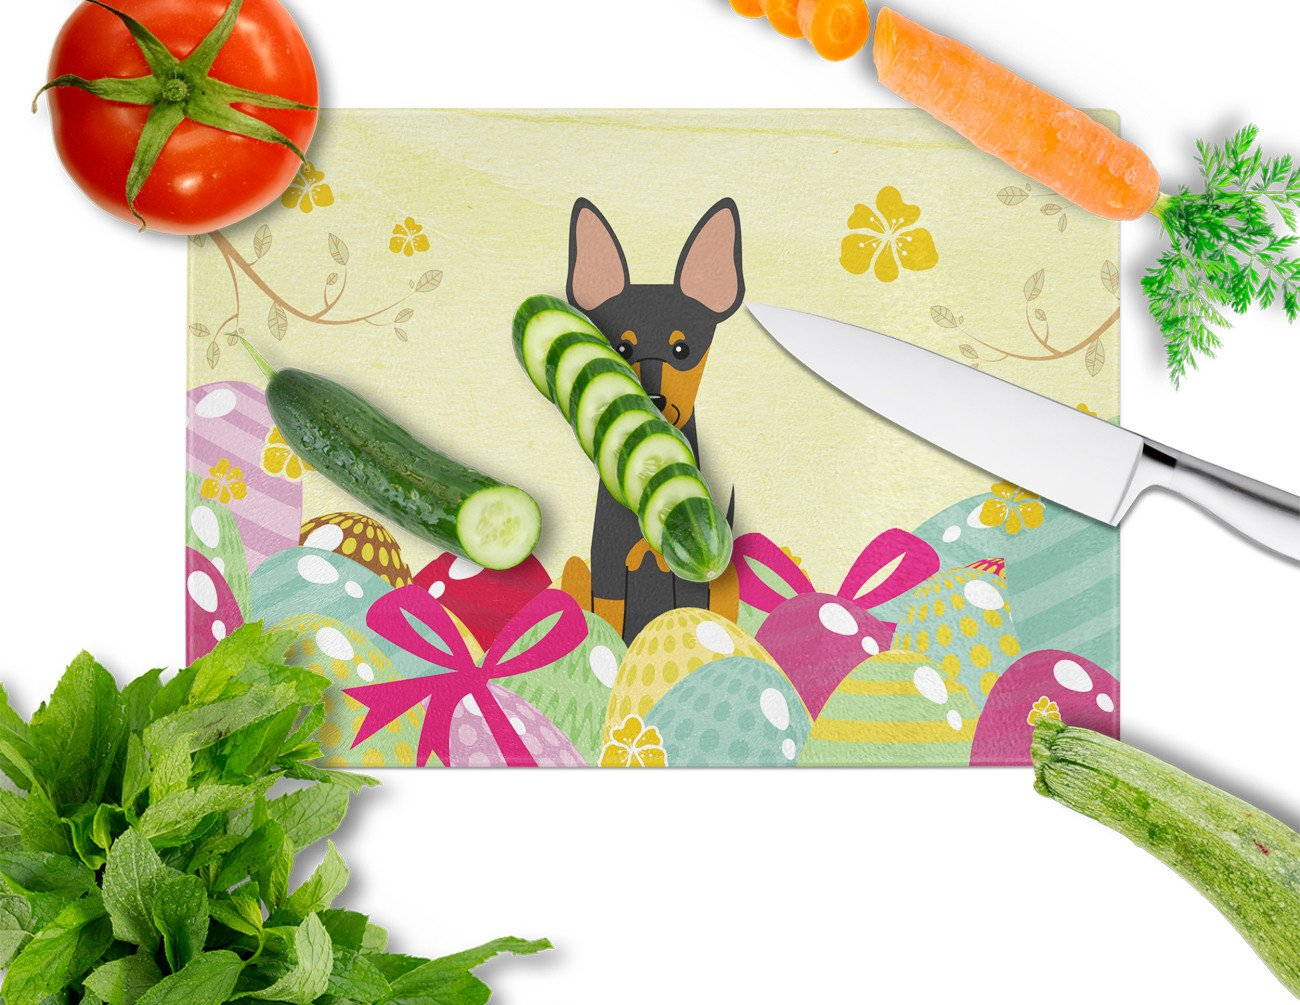 Easter Eggs English Toy Terrier Glass Cutting Board Large BB6109LCB by Caroline's Treasures